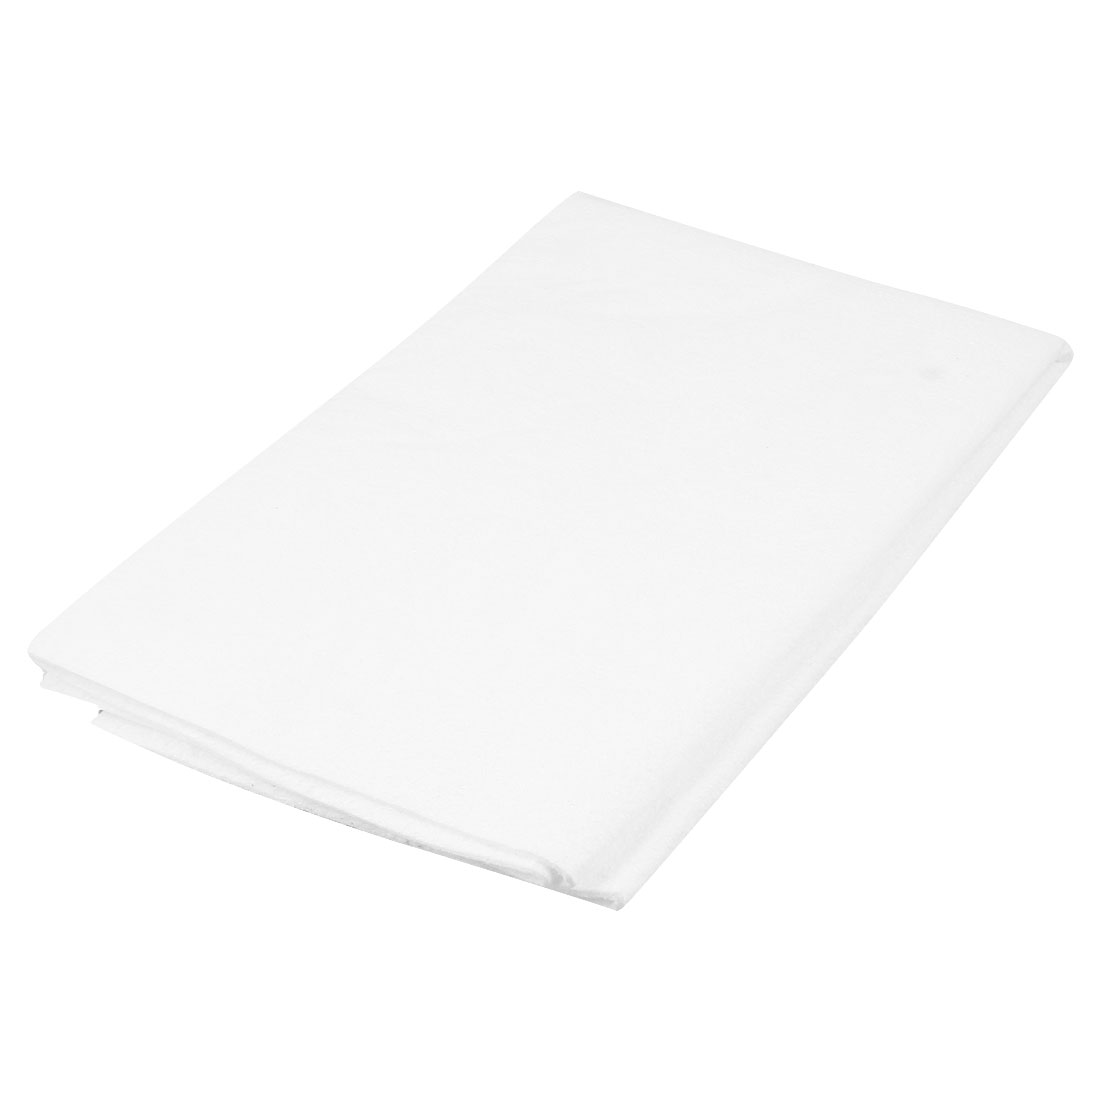 Car Washing White Microfibre 50cm x 60cm Rectangular Towel